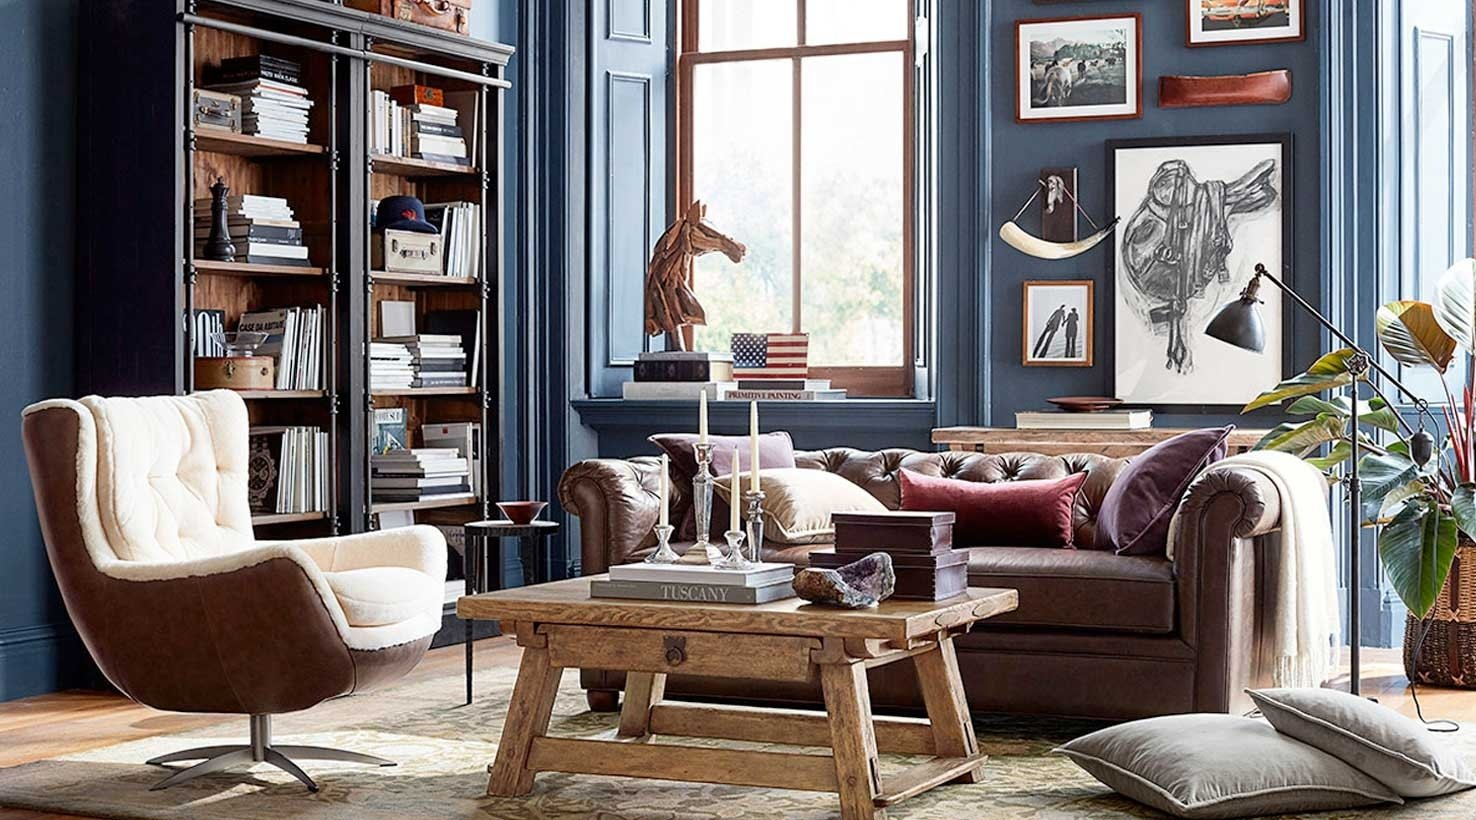 10 Attractive Wall Color Ideas For Living Room living room paint color ideas inspiration gallery sherwin williams 32 2020